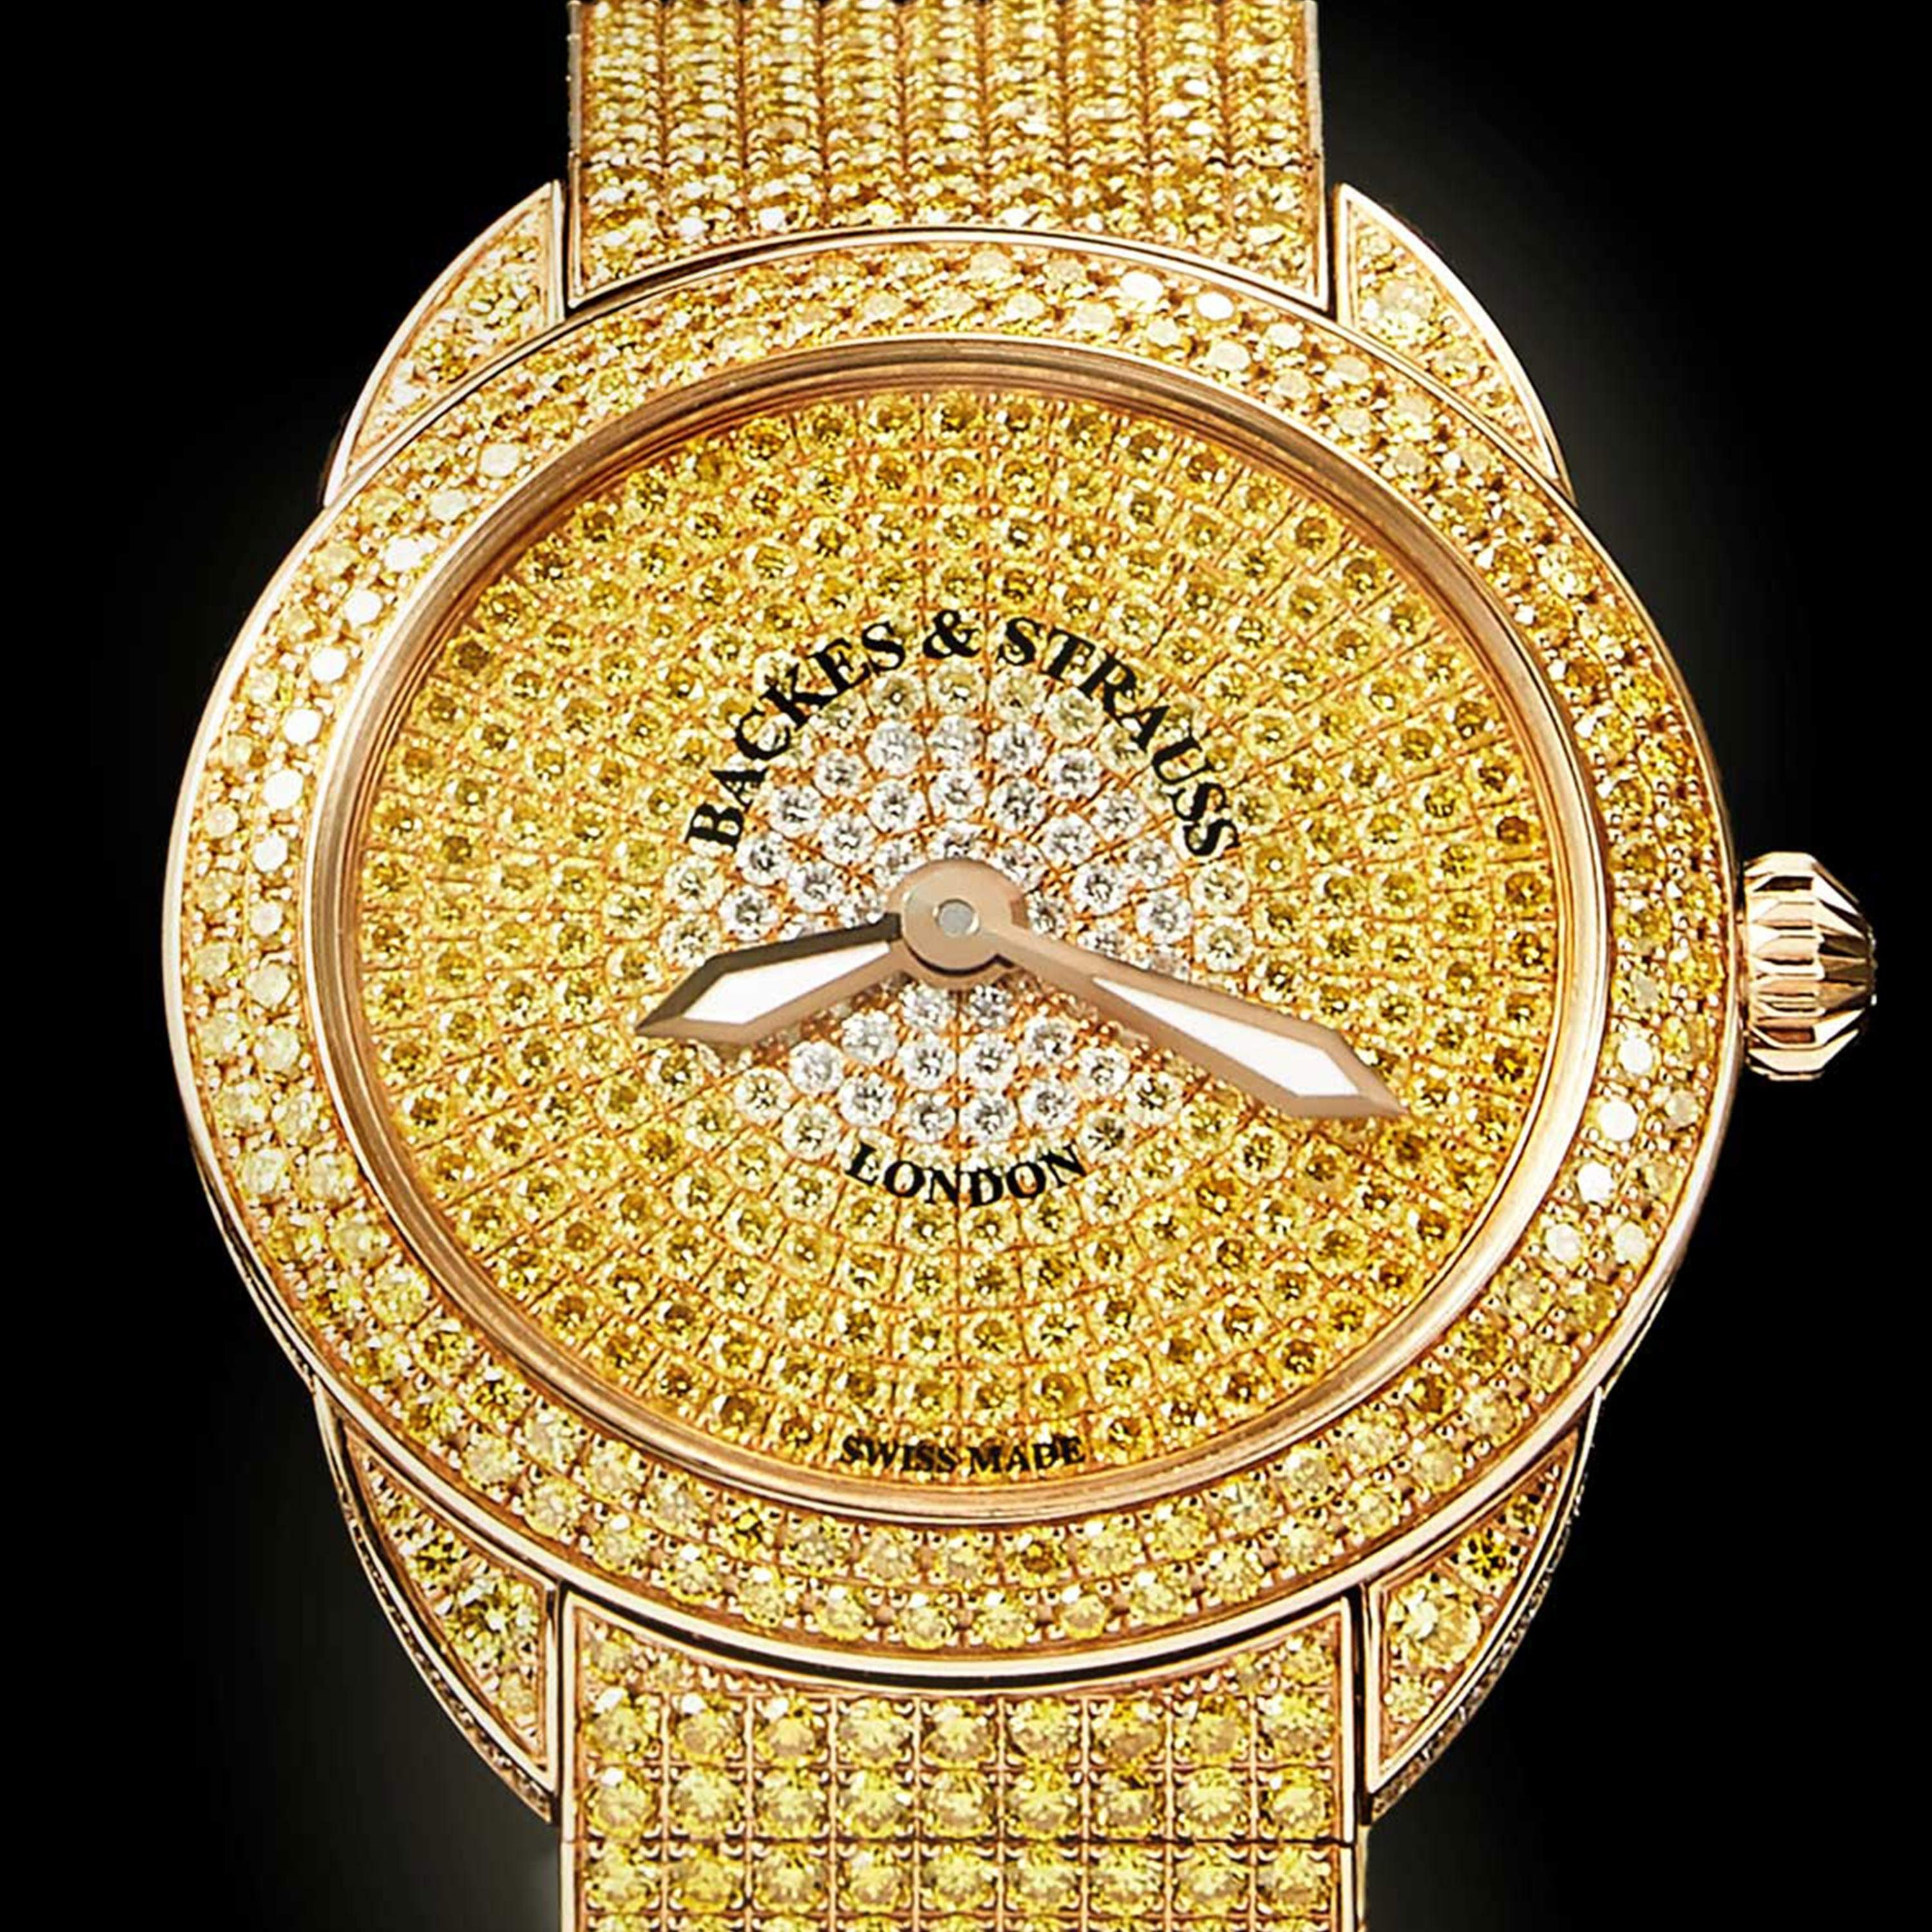 Piccadilly Renaissance Ballerina Jonquil 33 Luxury Diamond Watch for Women - 33 mm Rose Gold - Backes & Strauss